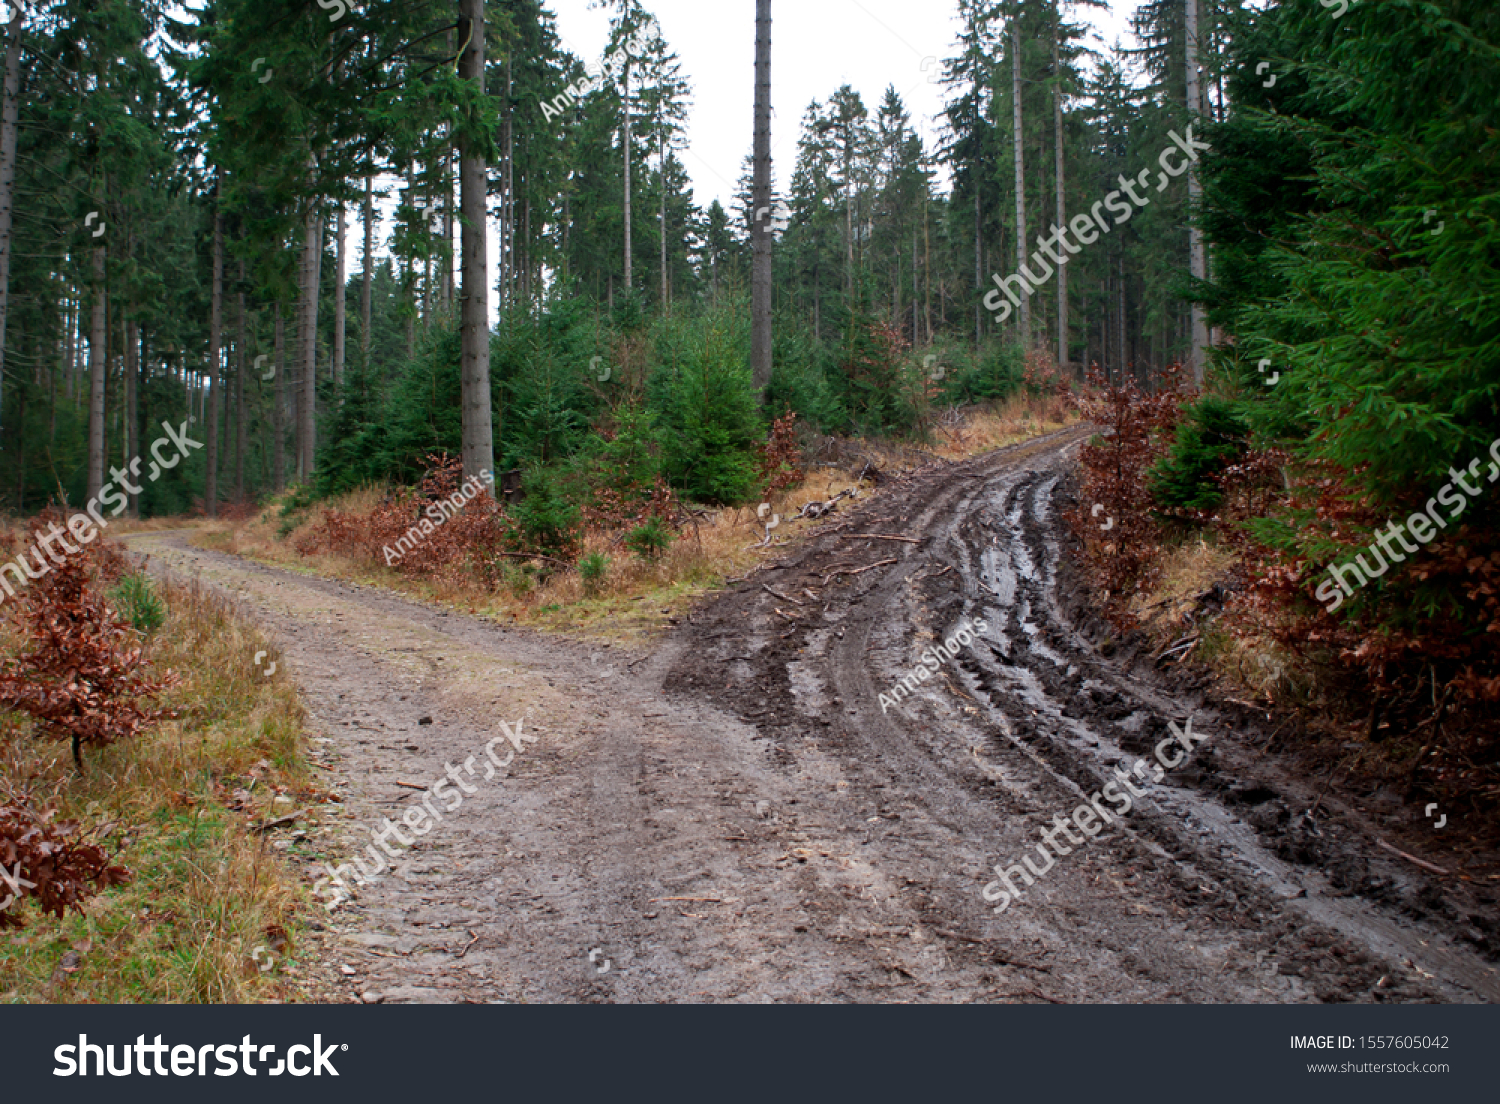 stock-photo-the-crosroad-choose-your-way